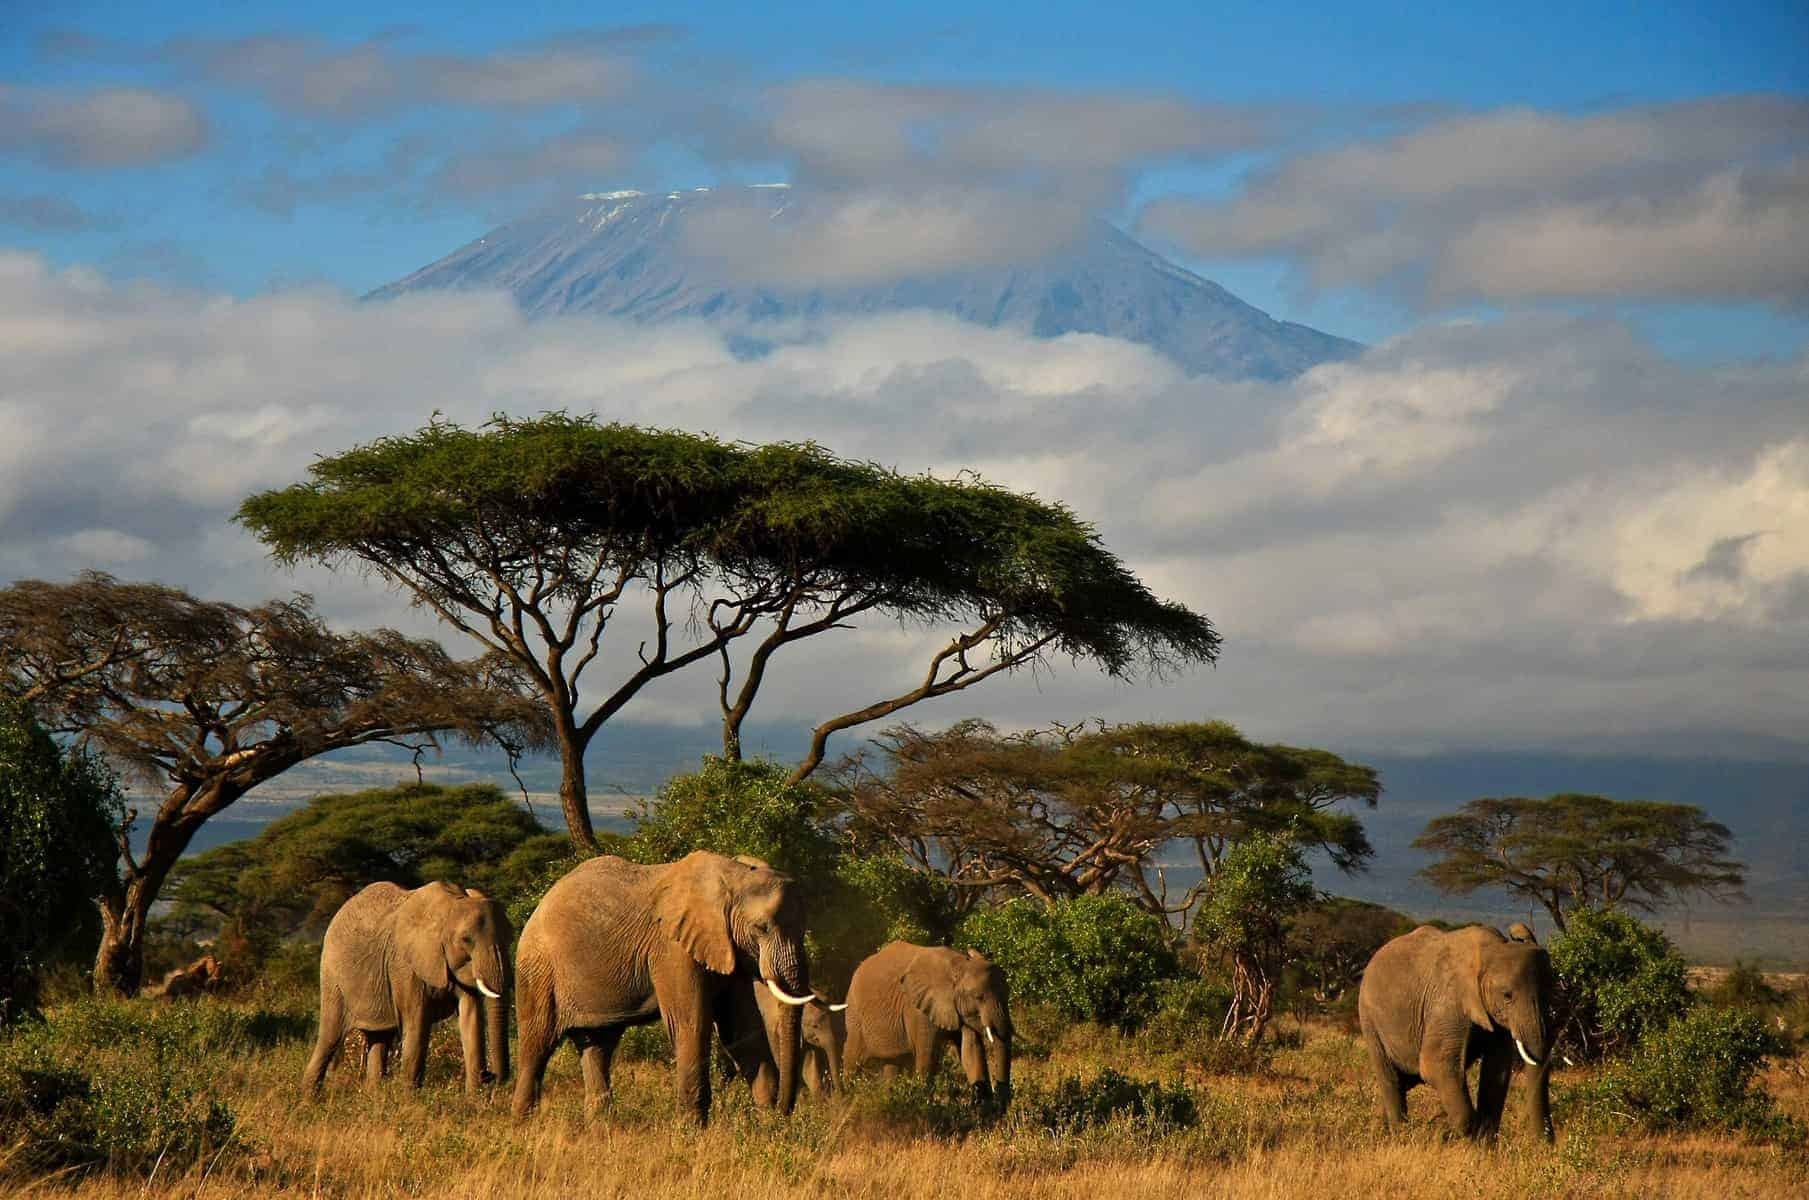 An elephant family walking in front of Mt. Kilimanjaro